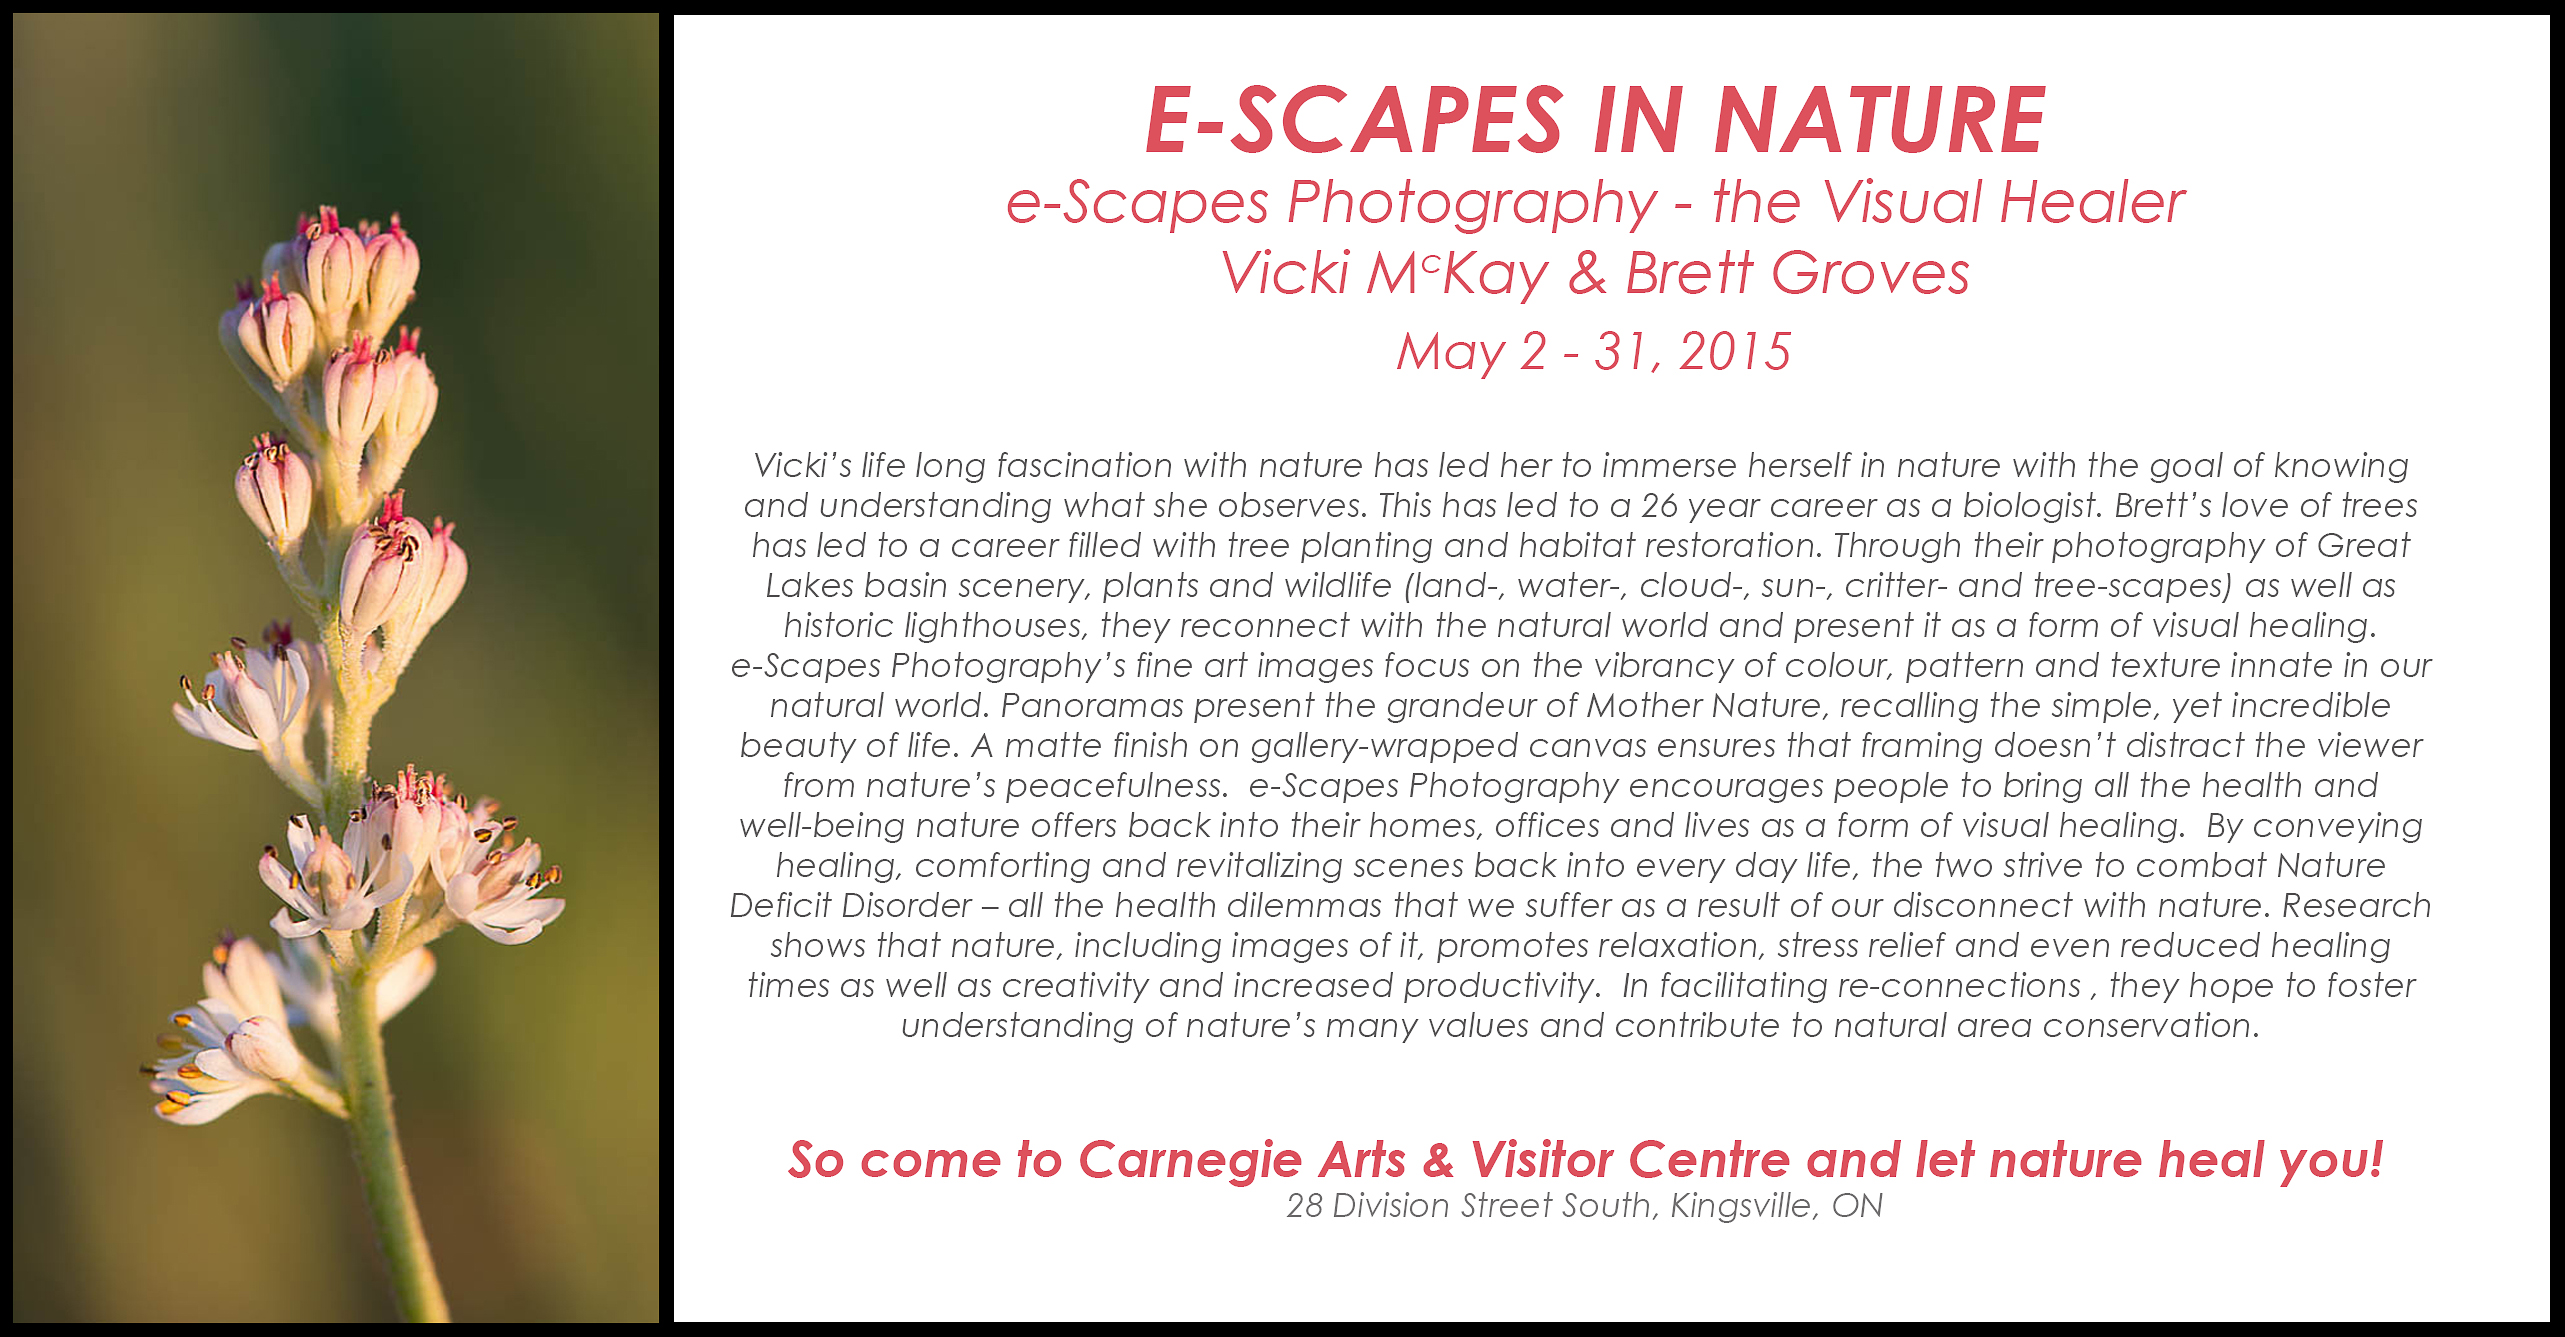 Poster - e-Scapes Photography show at the Carnegie Arts & Visitor Centre, Kingsville, ON